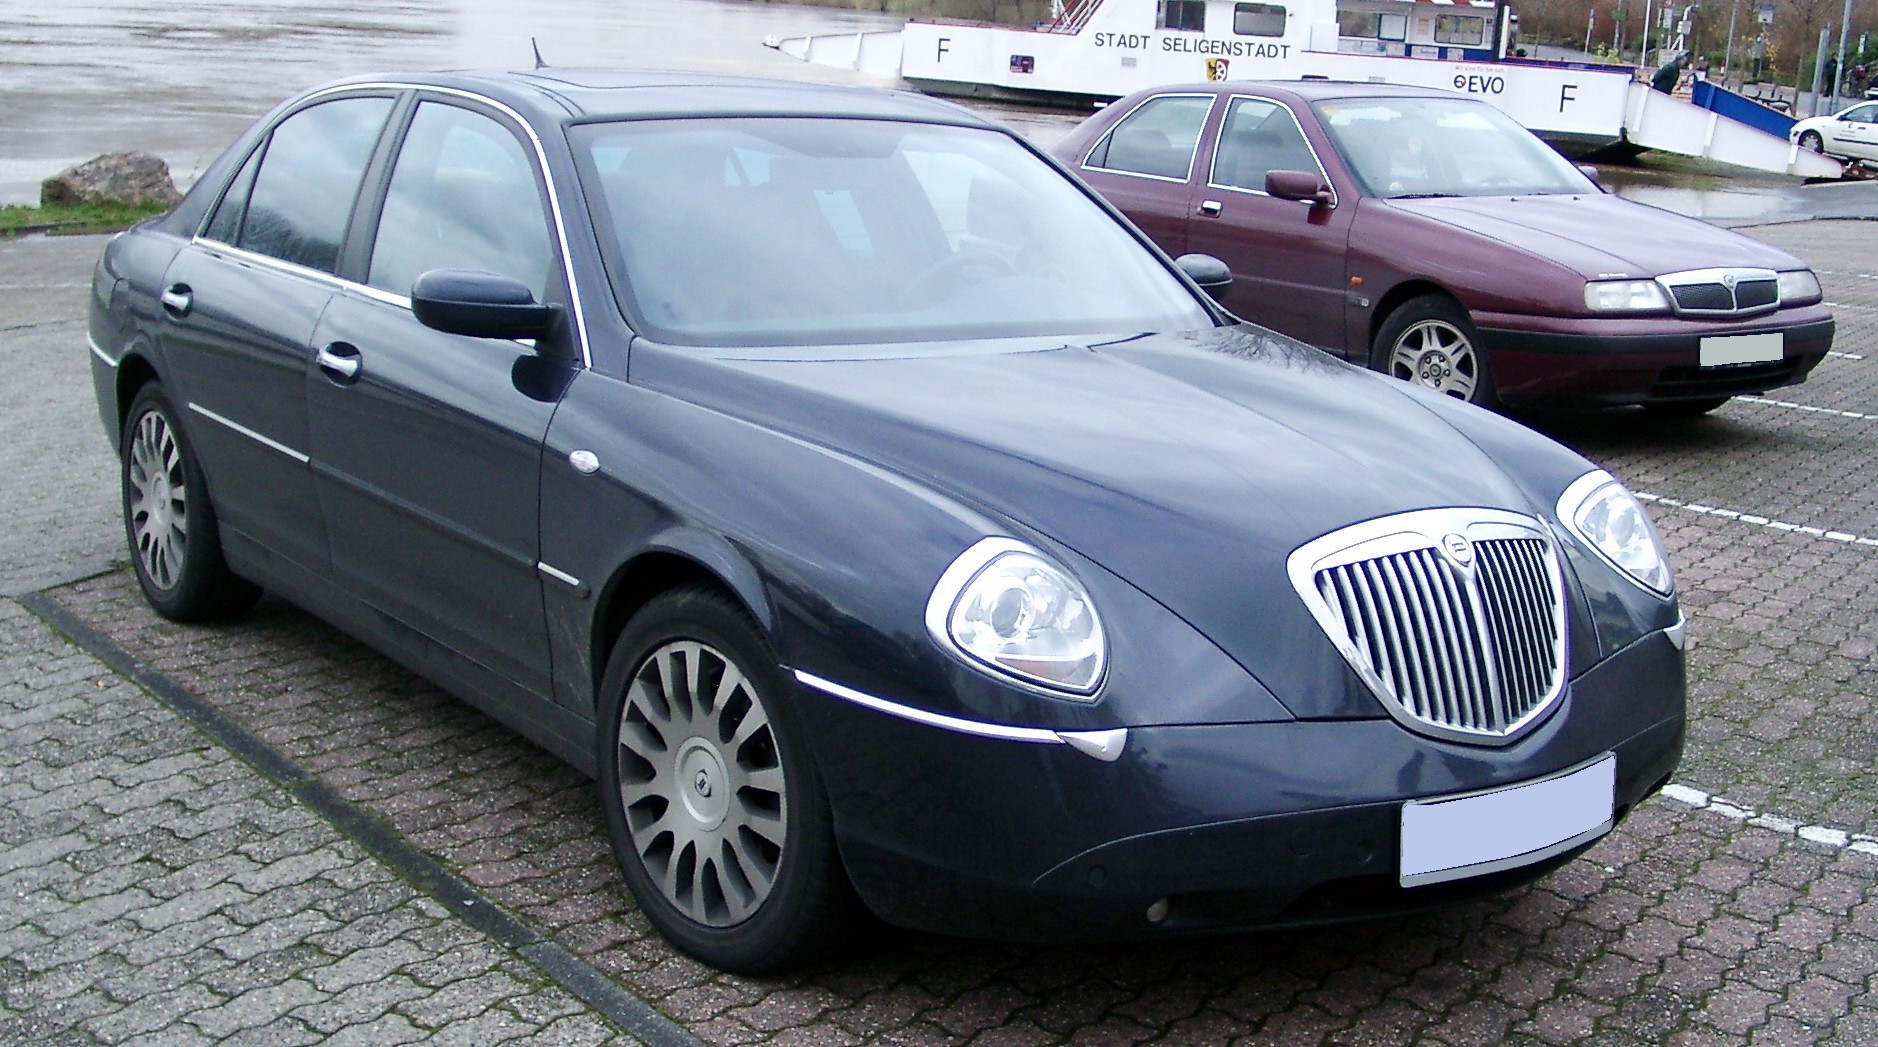 lancia thesis 2.4 multijet test